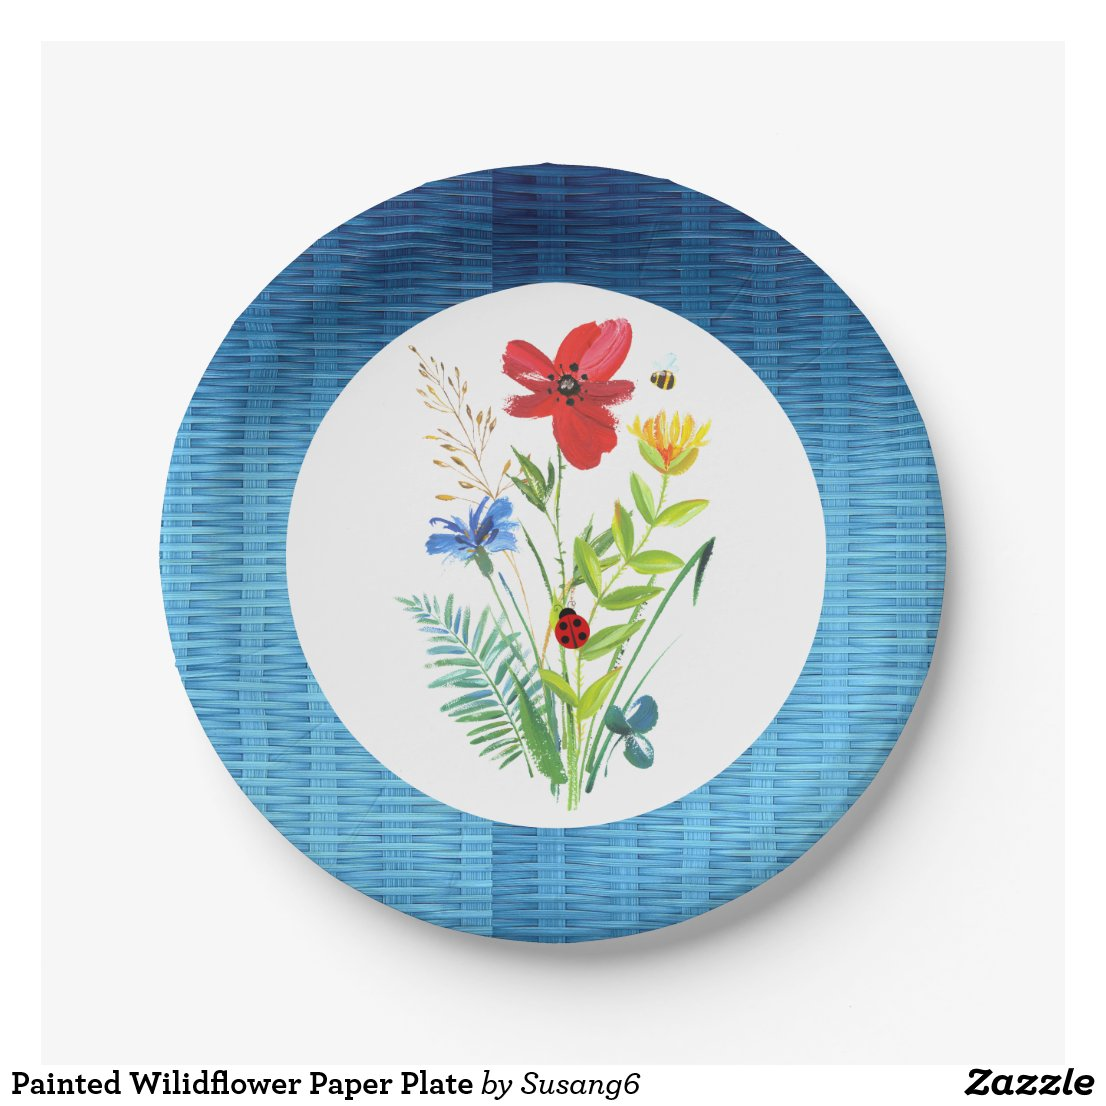 Painted Wilidflower Paper Plate